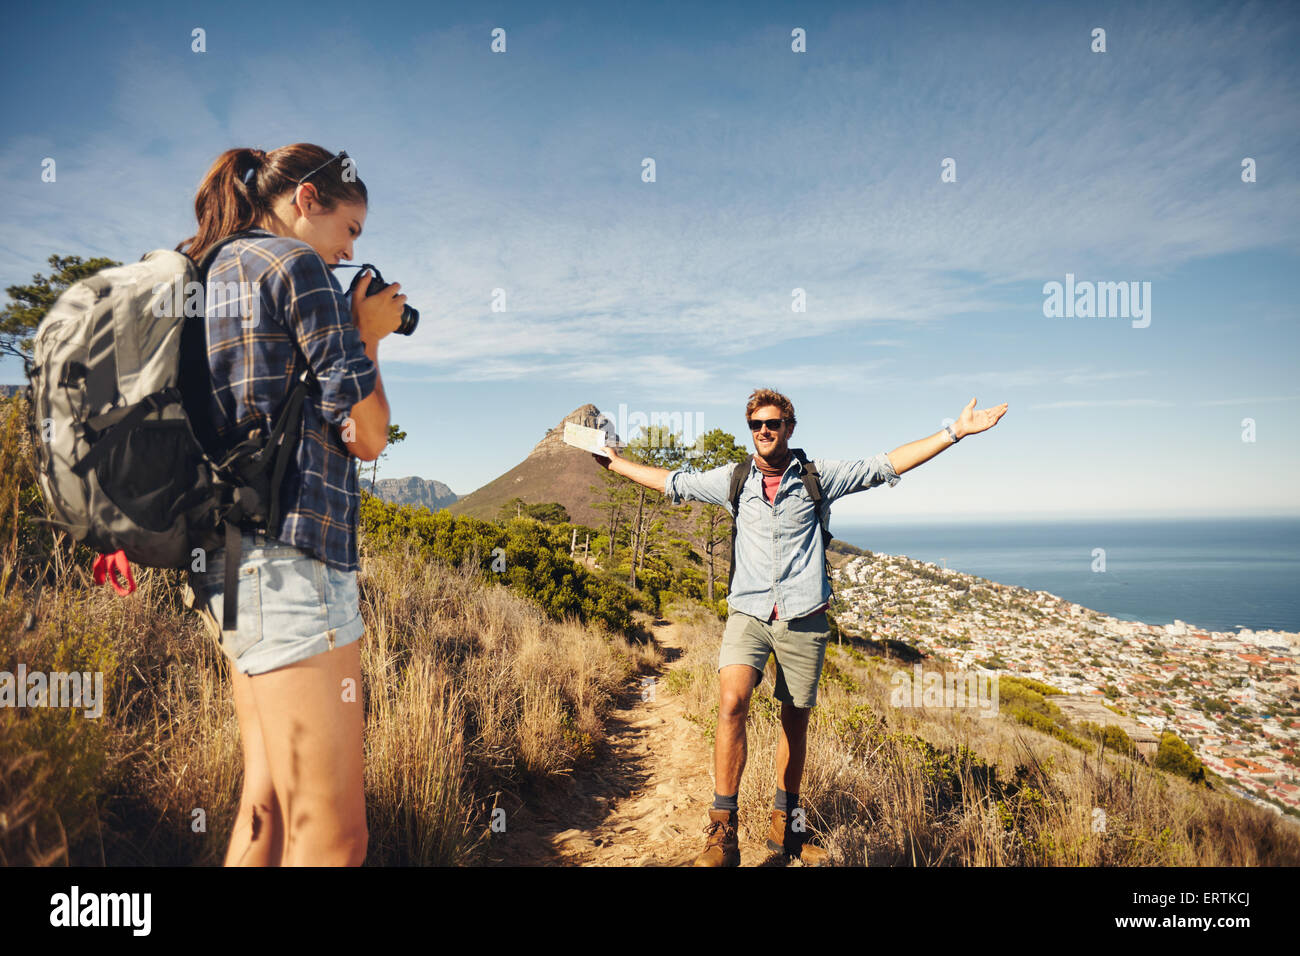 Outdoor shot of young woman photographing her boyfriend in countryside while hiking. Hiker couple enjoying during - Stock Image